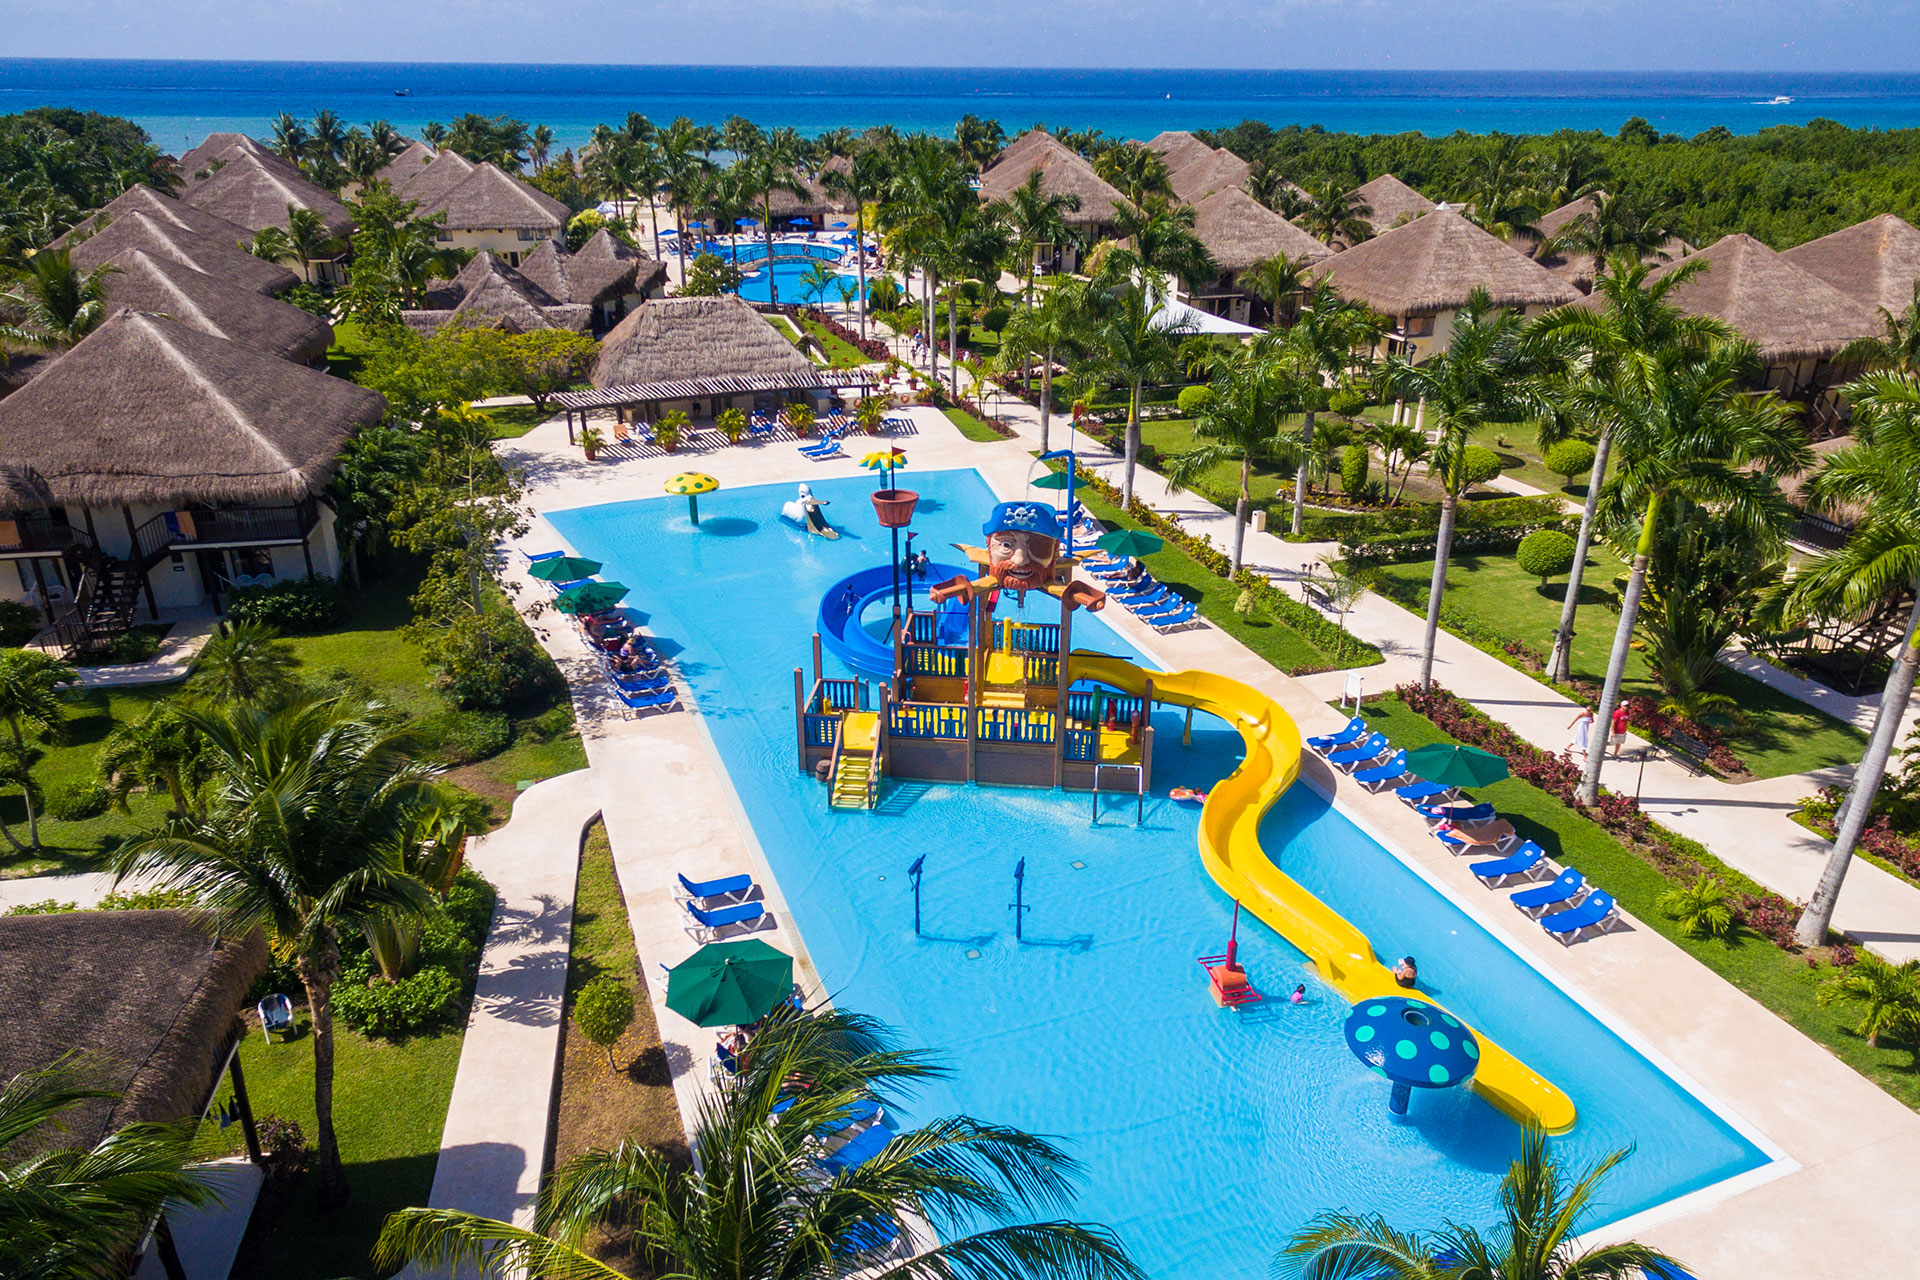 Aerial View of Pools at Allegro Cozumel; Courtesy of Allegro Cozumel